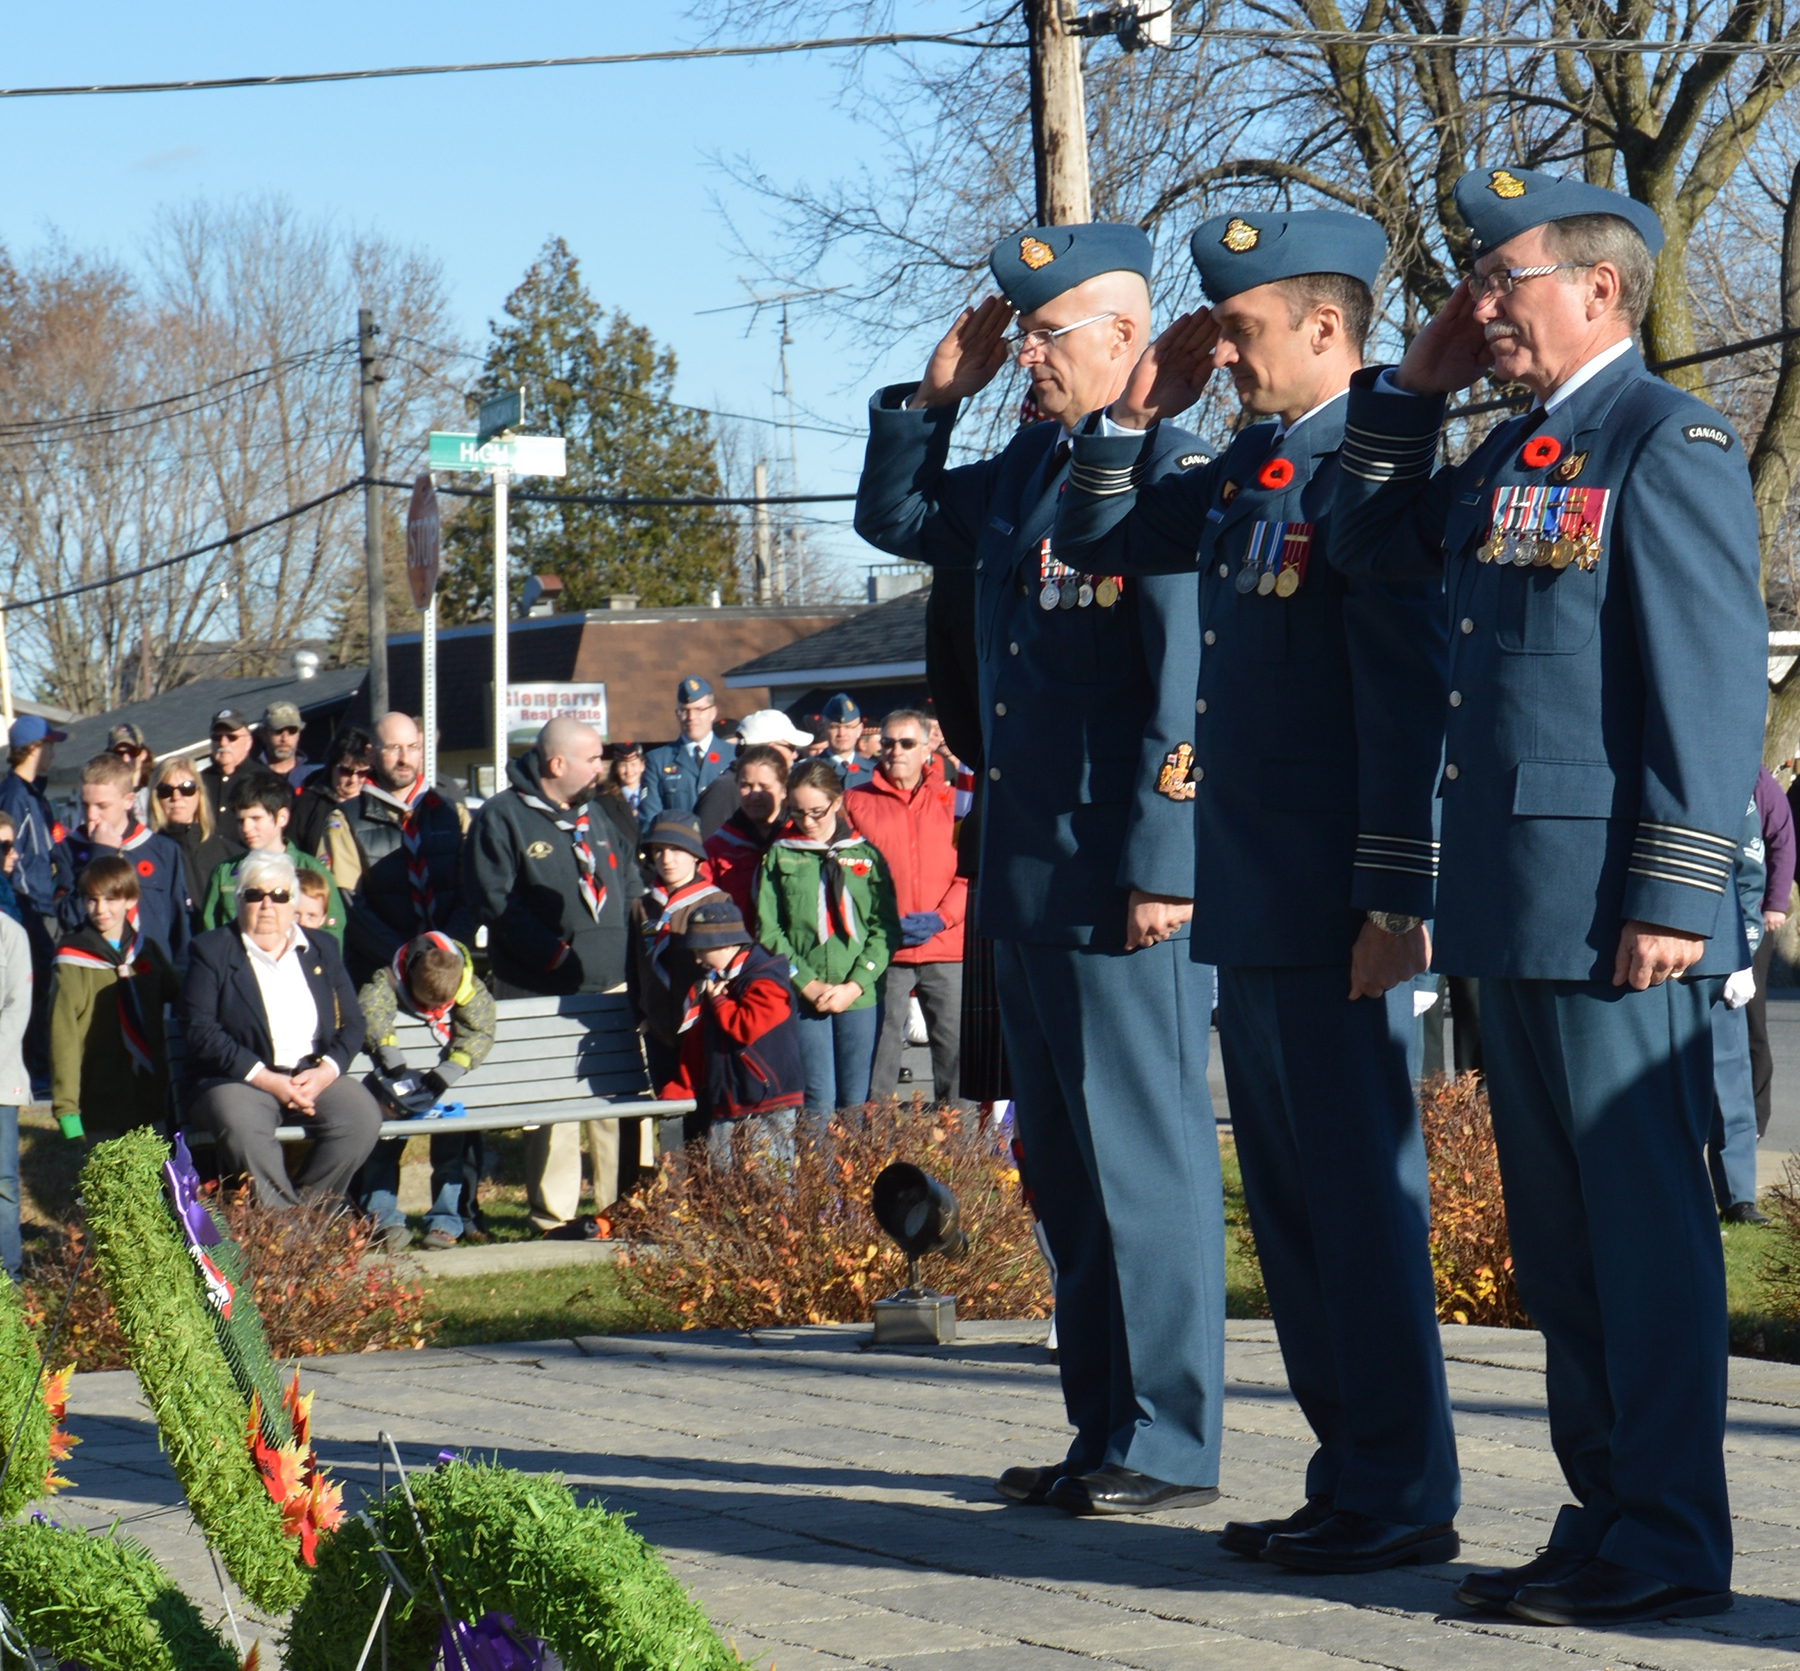 Chief Warrant Officer Michel Bonneau (left), Canadian Forces School of Aerospace Control Operations (CFSACO) chief warrant officer, CFSACO commanding officer Lieutenant-Colonel Steeve Caron, and CFSACO's Honorary Colonel Robert Chekan salute after placing a wreath during the Remembrance Day ceremony in Cornwall, Ontario. PHOTO: DND